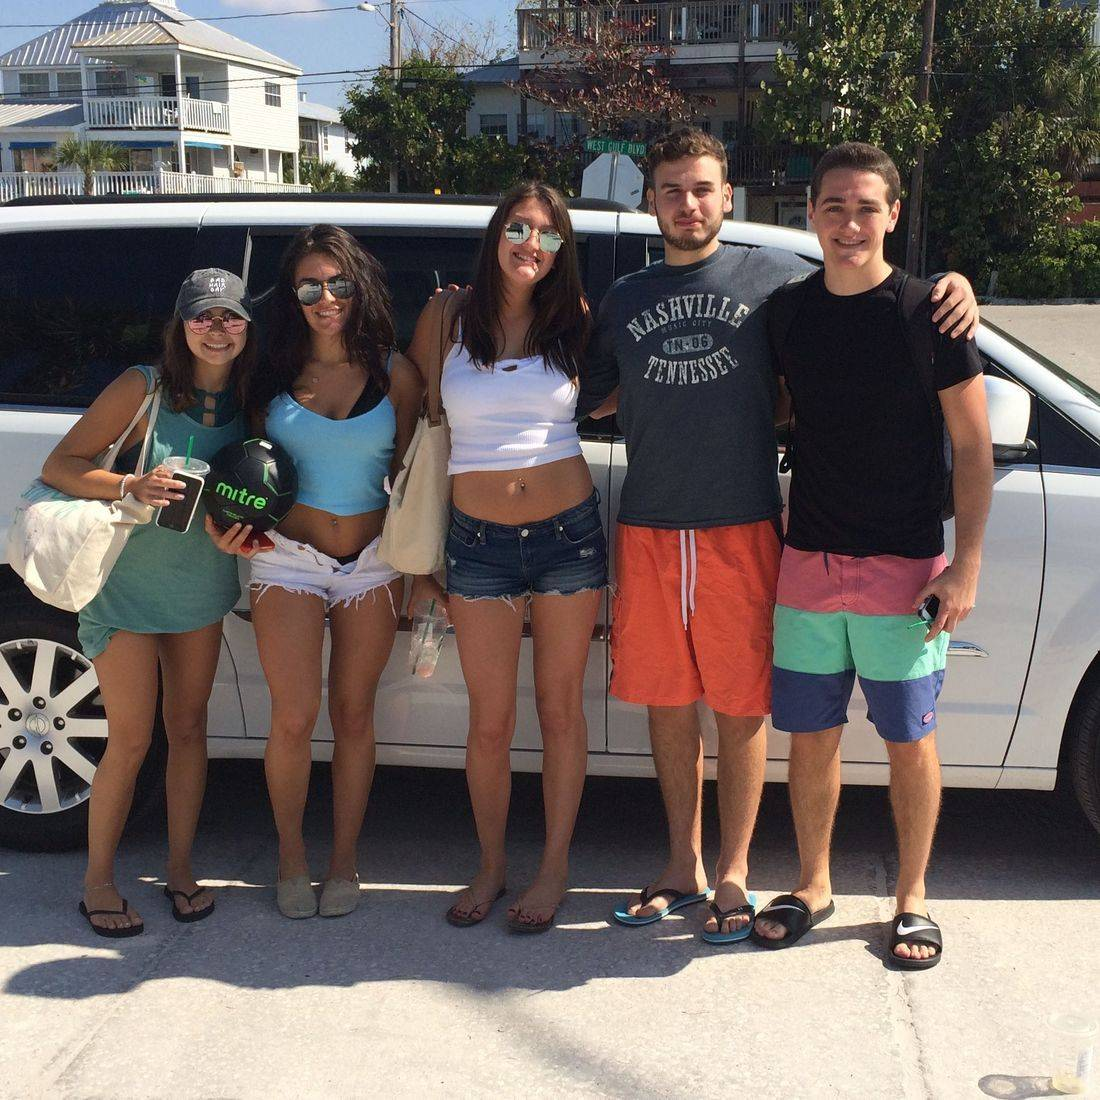 Took these young folks to the beach